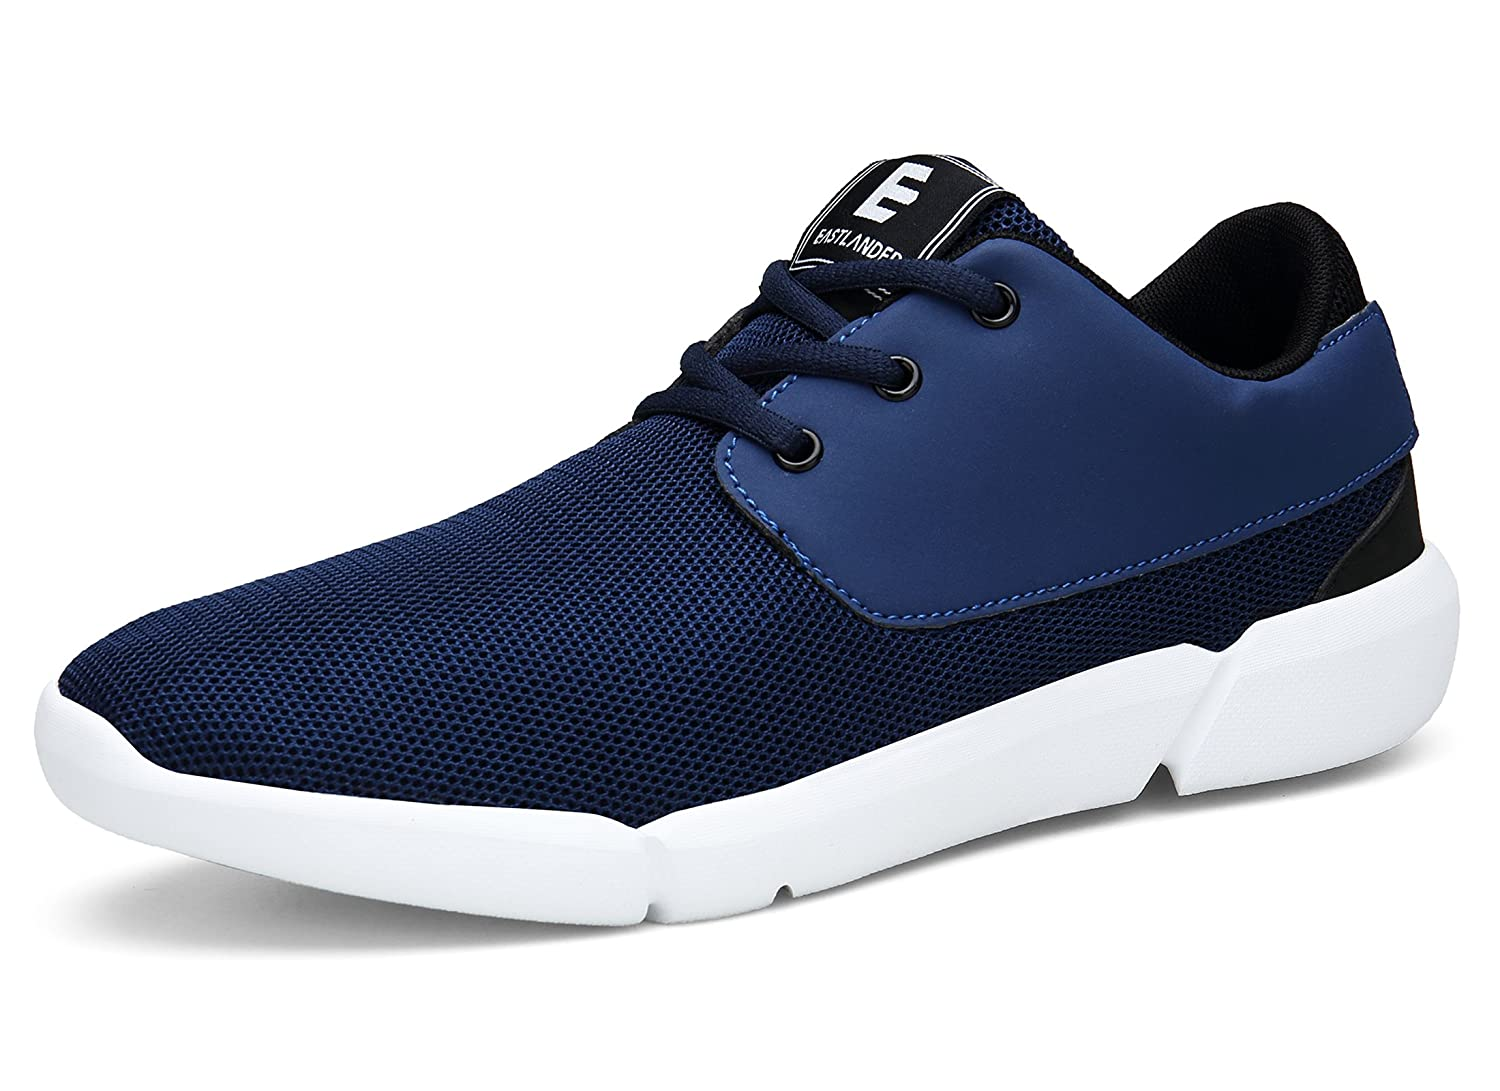 EAST LANDER Walking Shoes Men Casual Sneakers Lightweight Athletic Shoes Lace-up Running Sports Shoes China